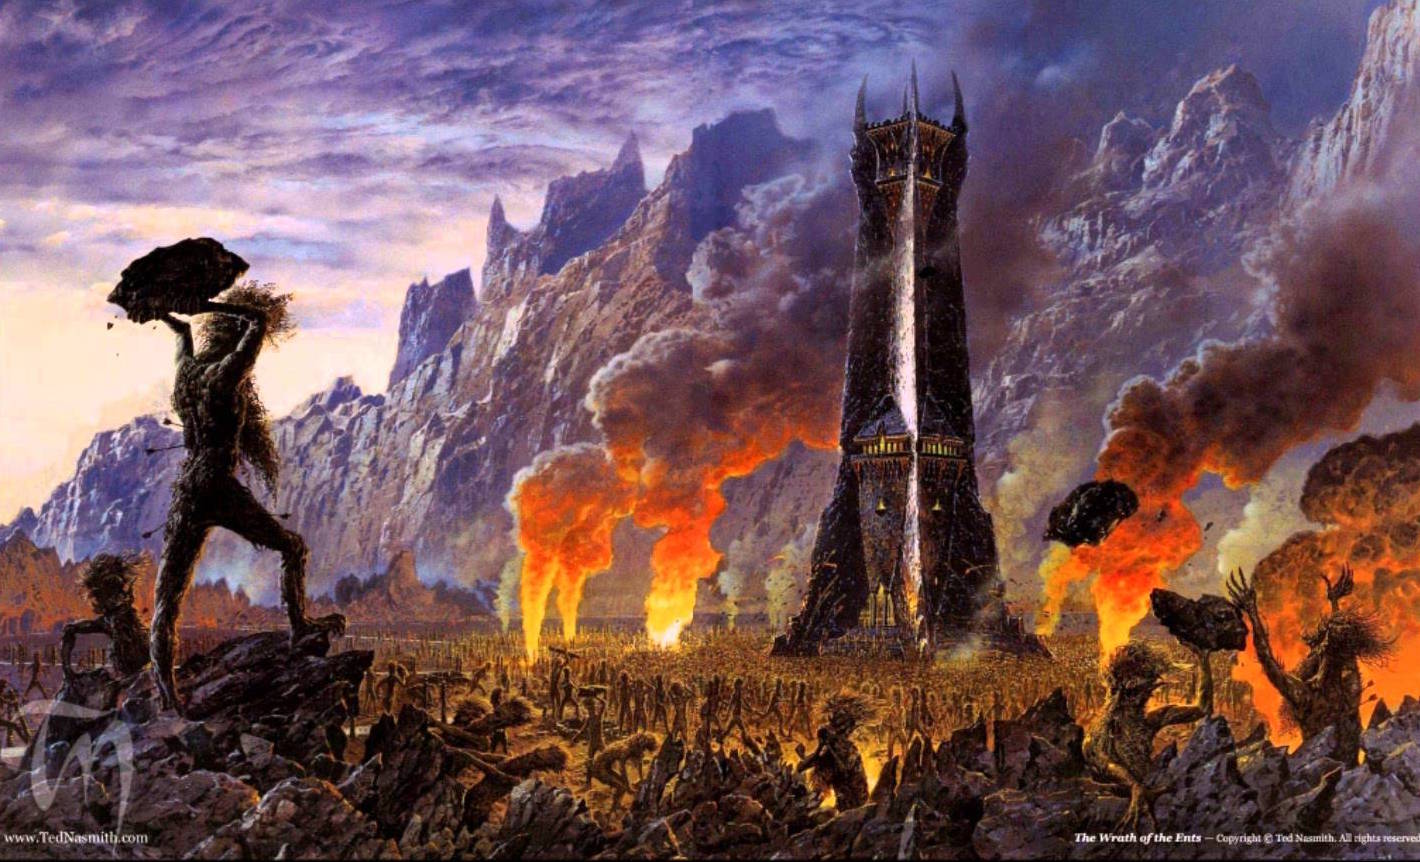 Wrath of the Ents - Ted Nasmith